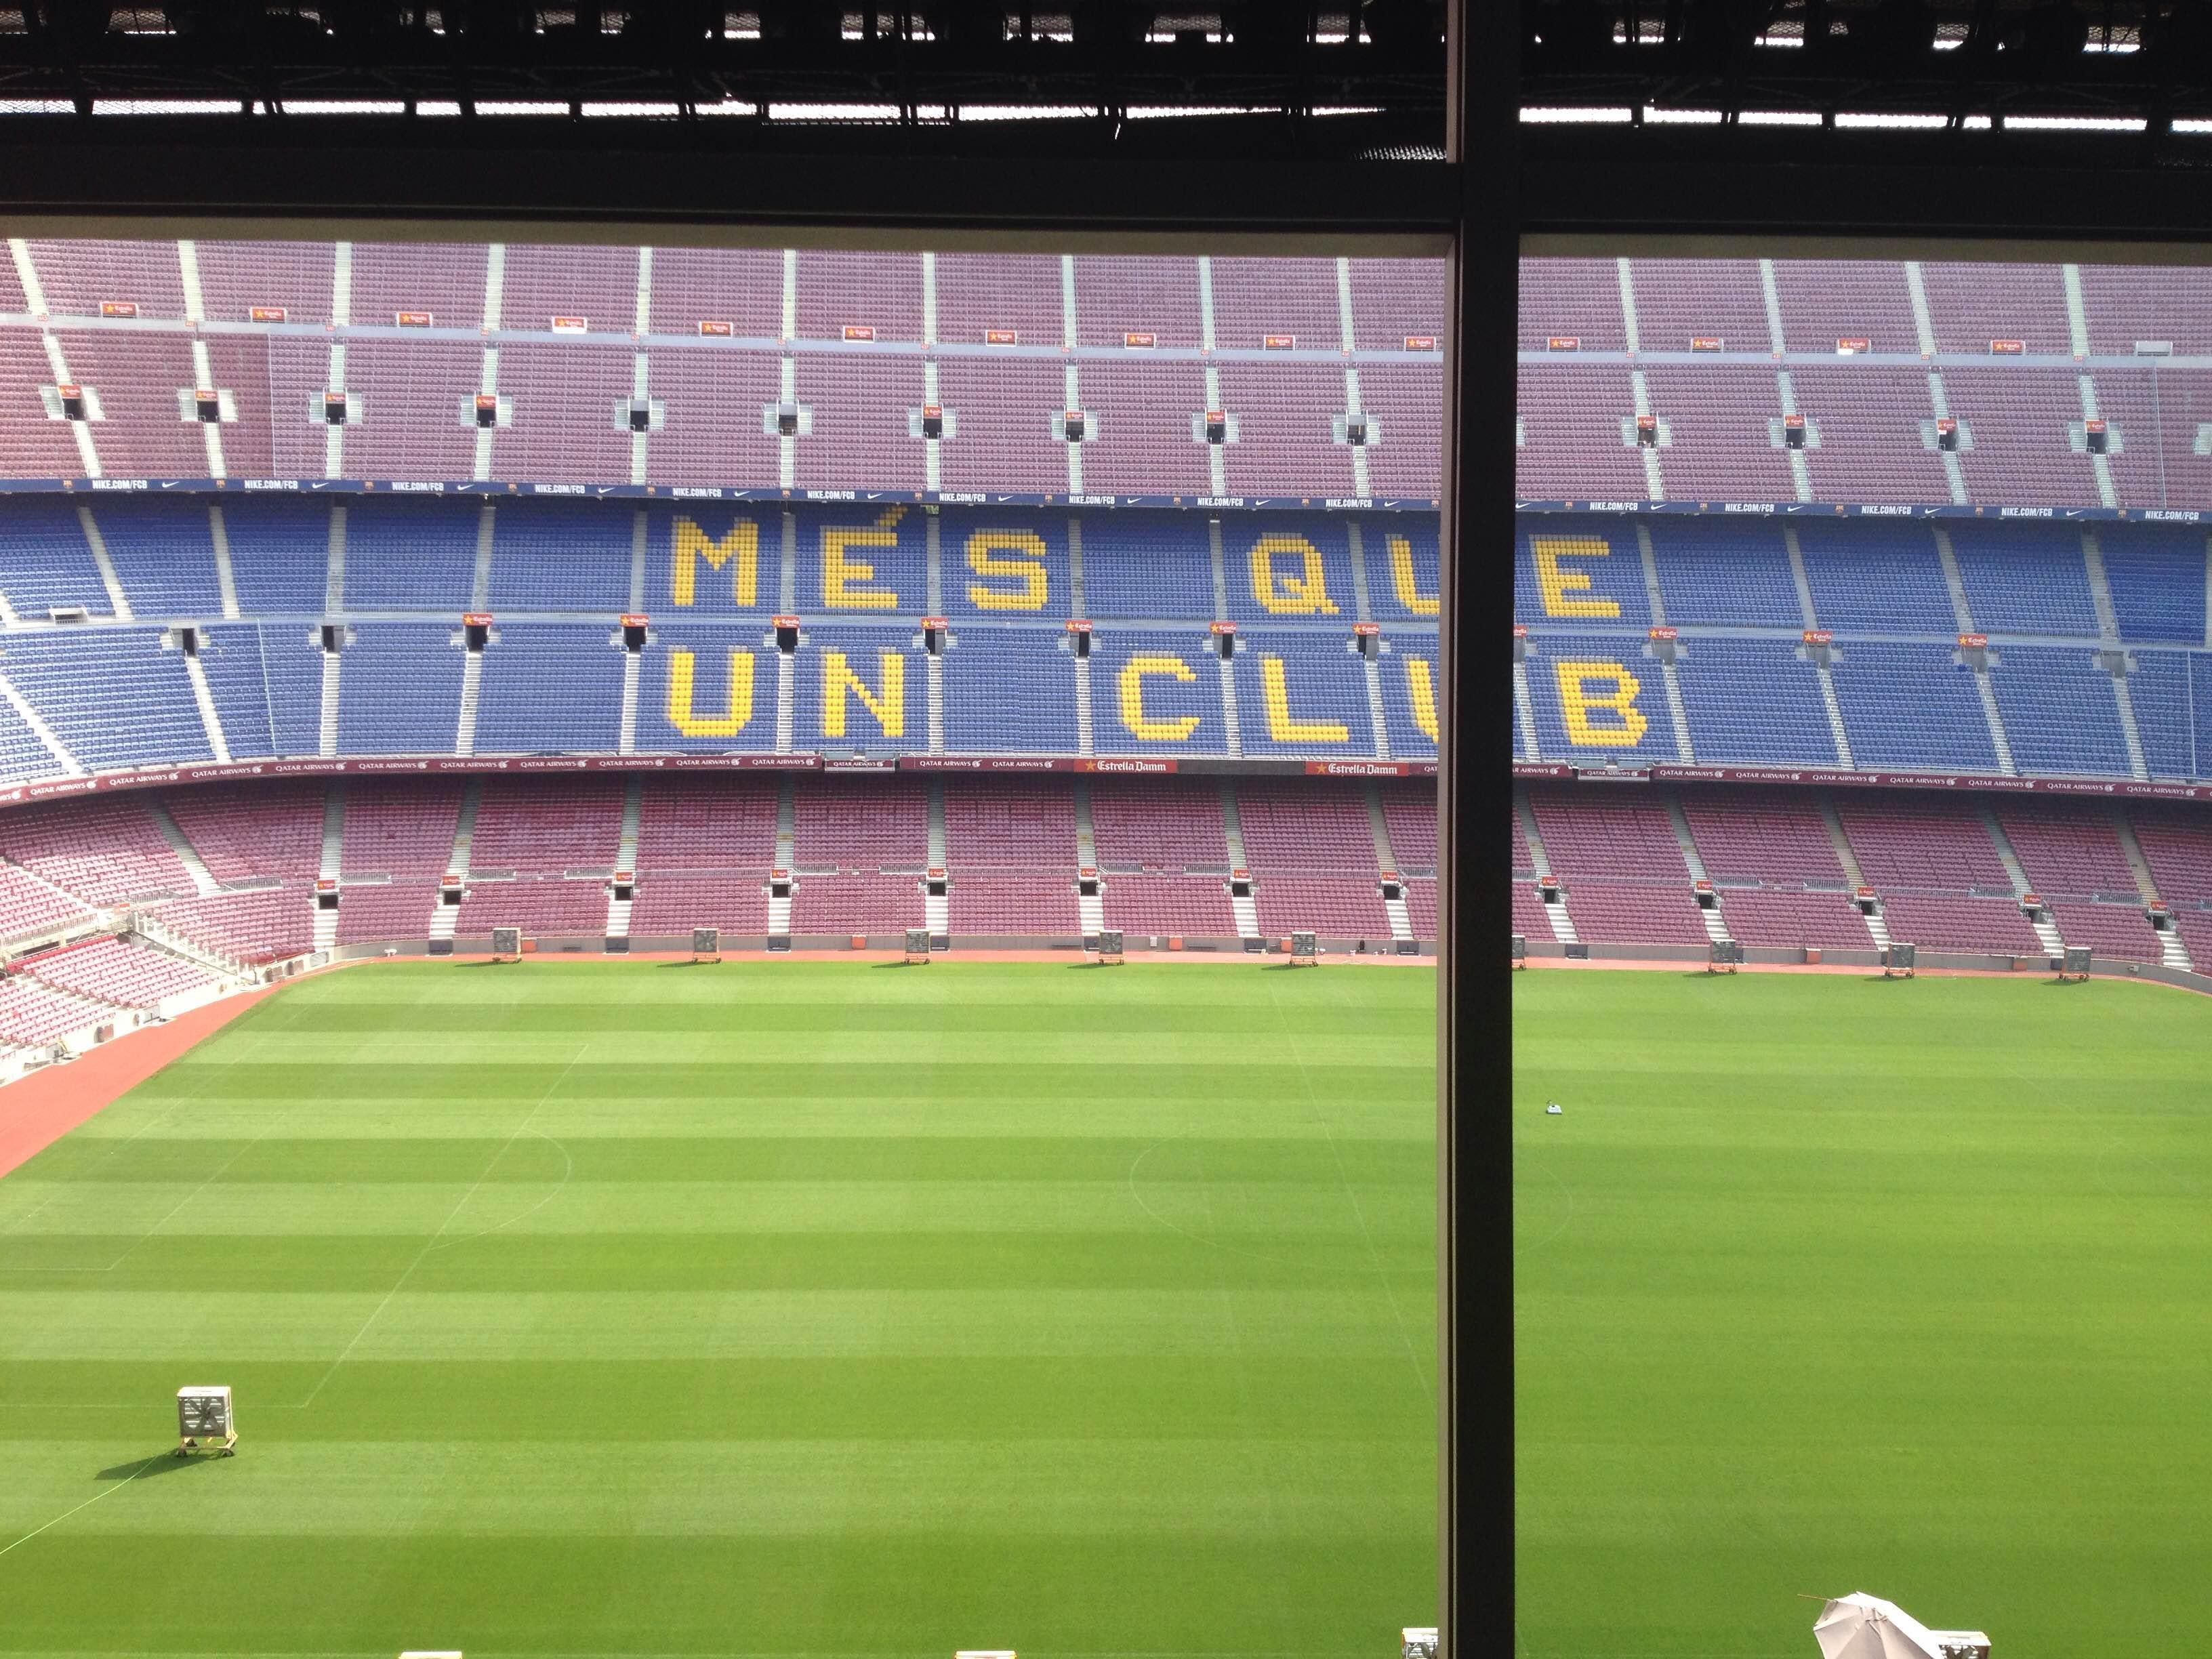 Estadio en Camp Nou